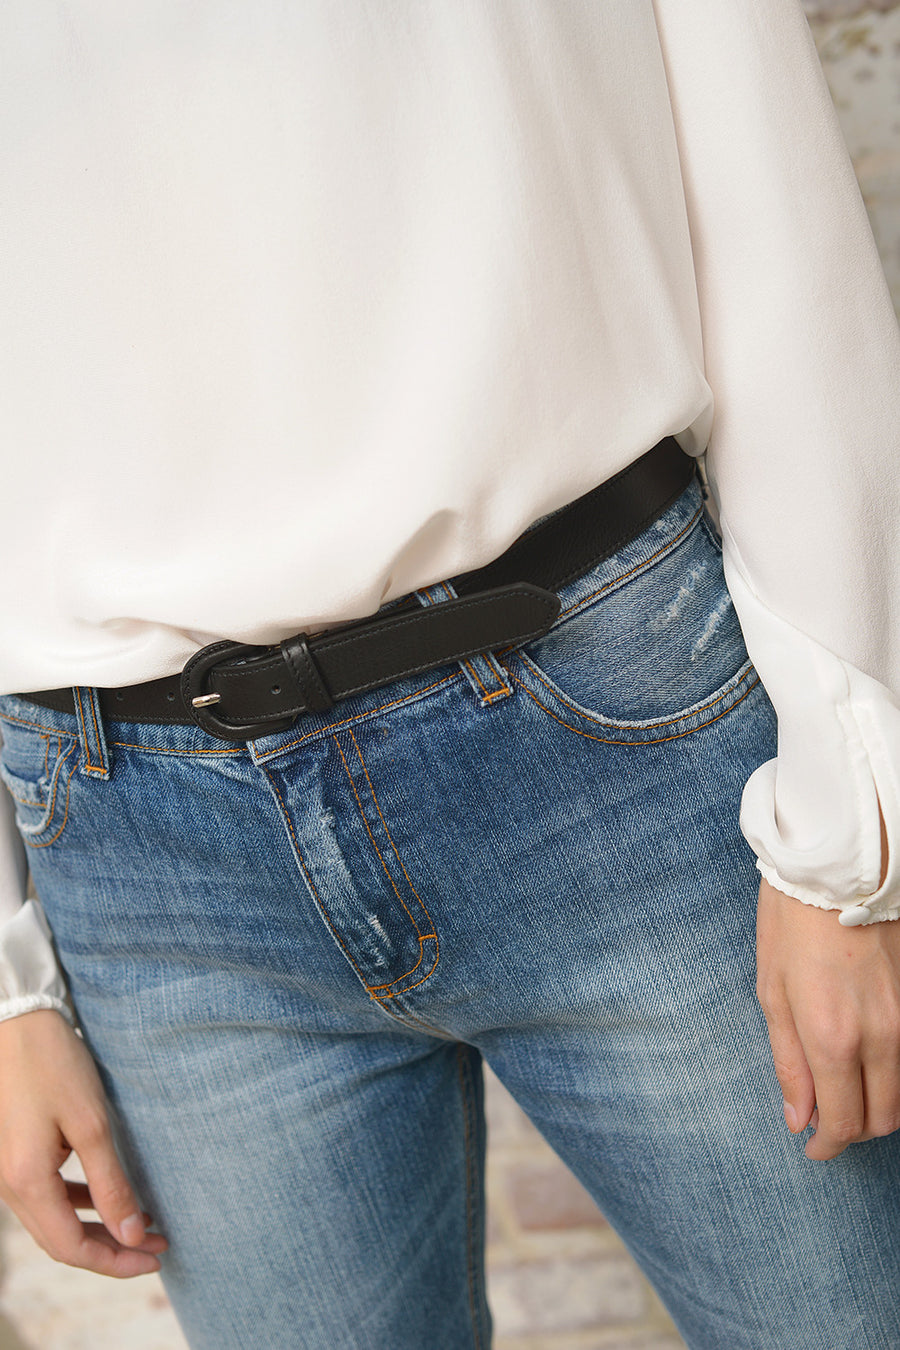 Cinhorel Ma Belt - nero